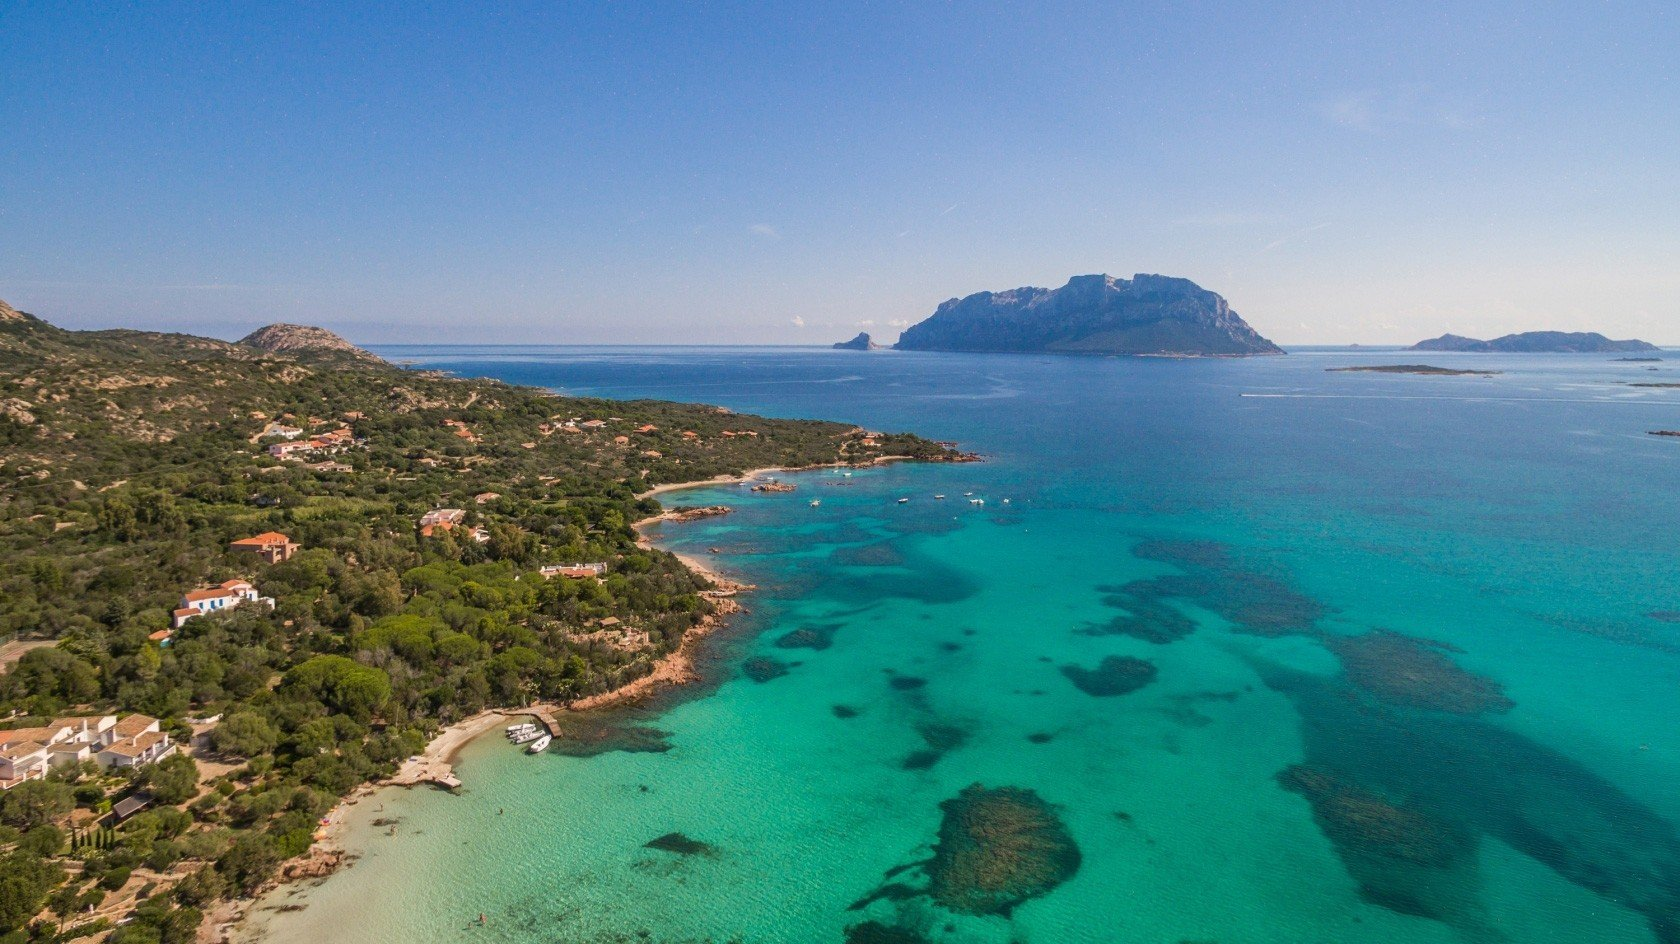 Sardinia Gallura - Costa Smeralda <br /> The most enchanting homes for sale